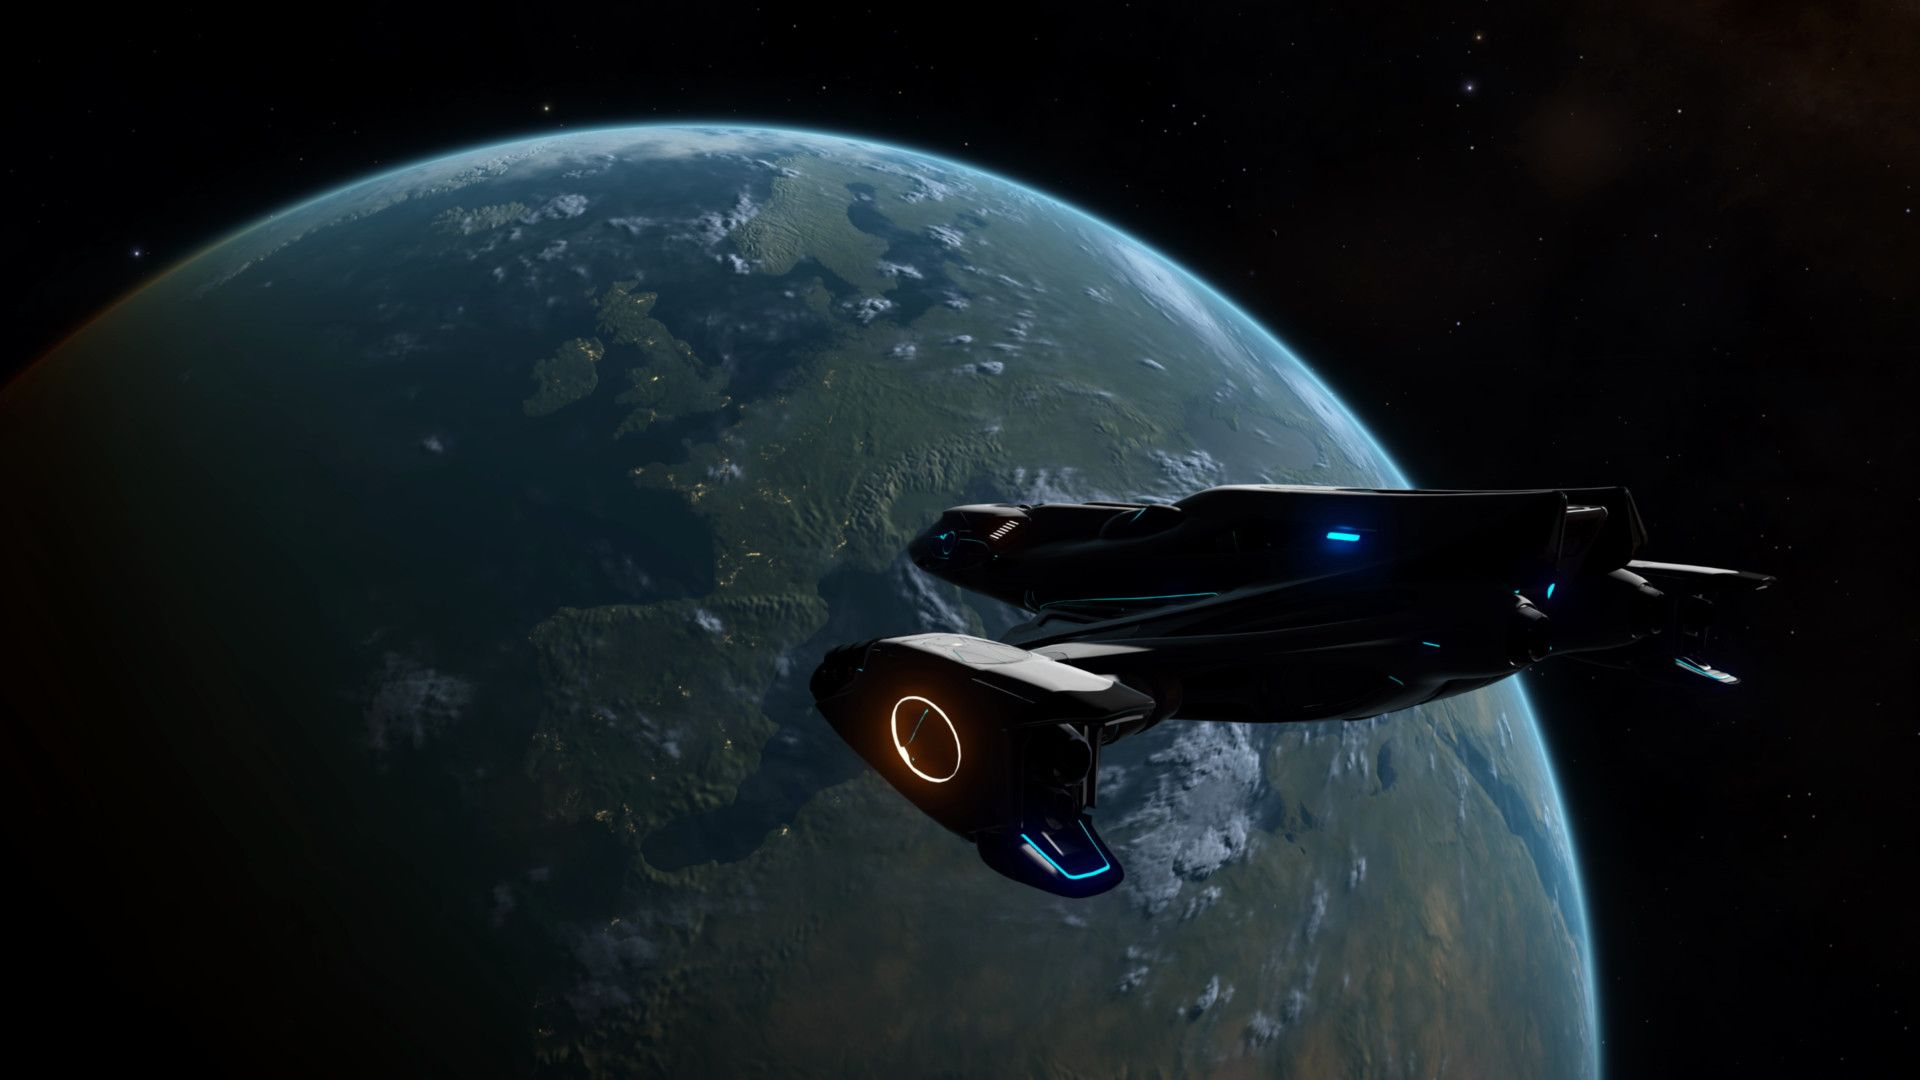 Companion site for Elite:Dangerous. Market data, CMDR's logs, logbooks, wings, galleries, powerplay, galaxy info, news and more...